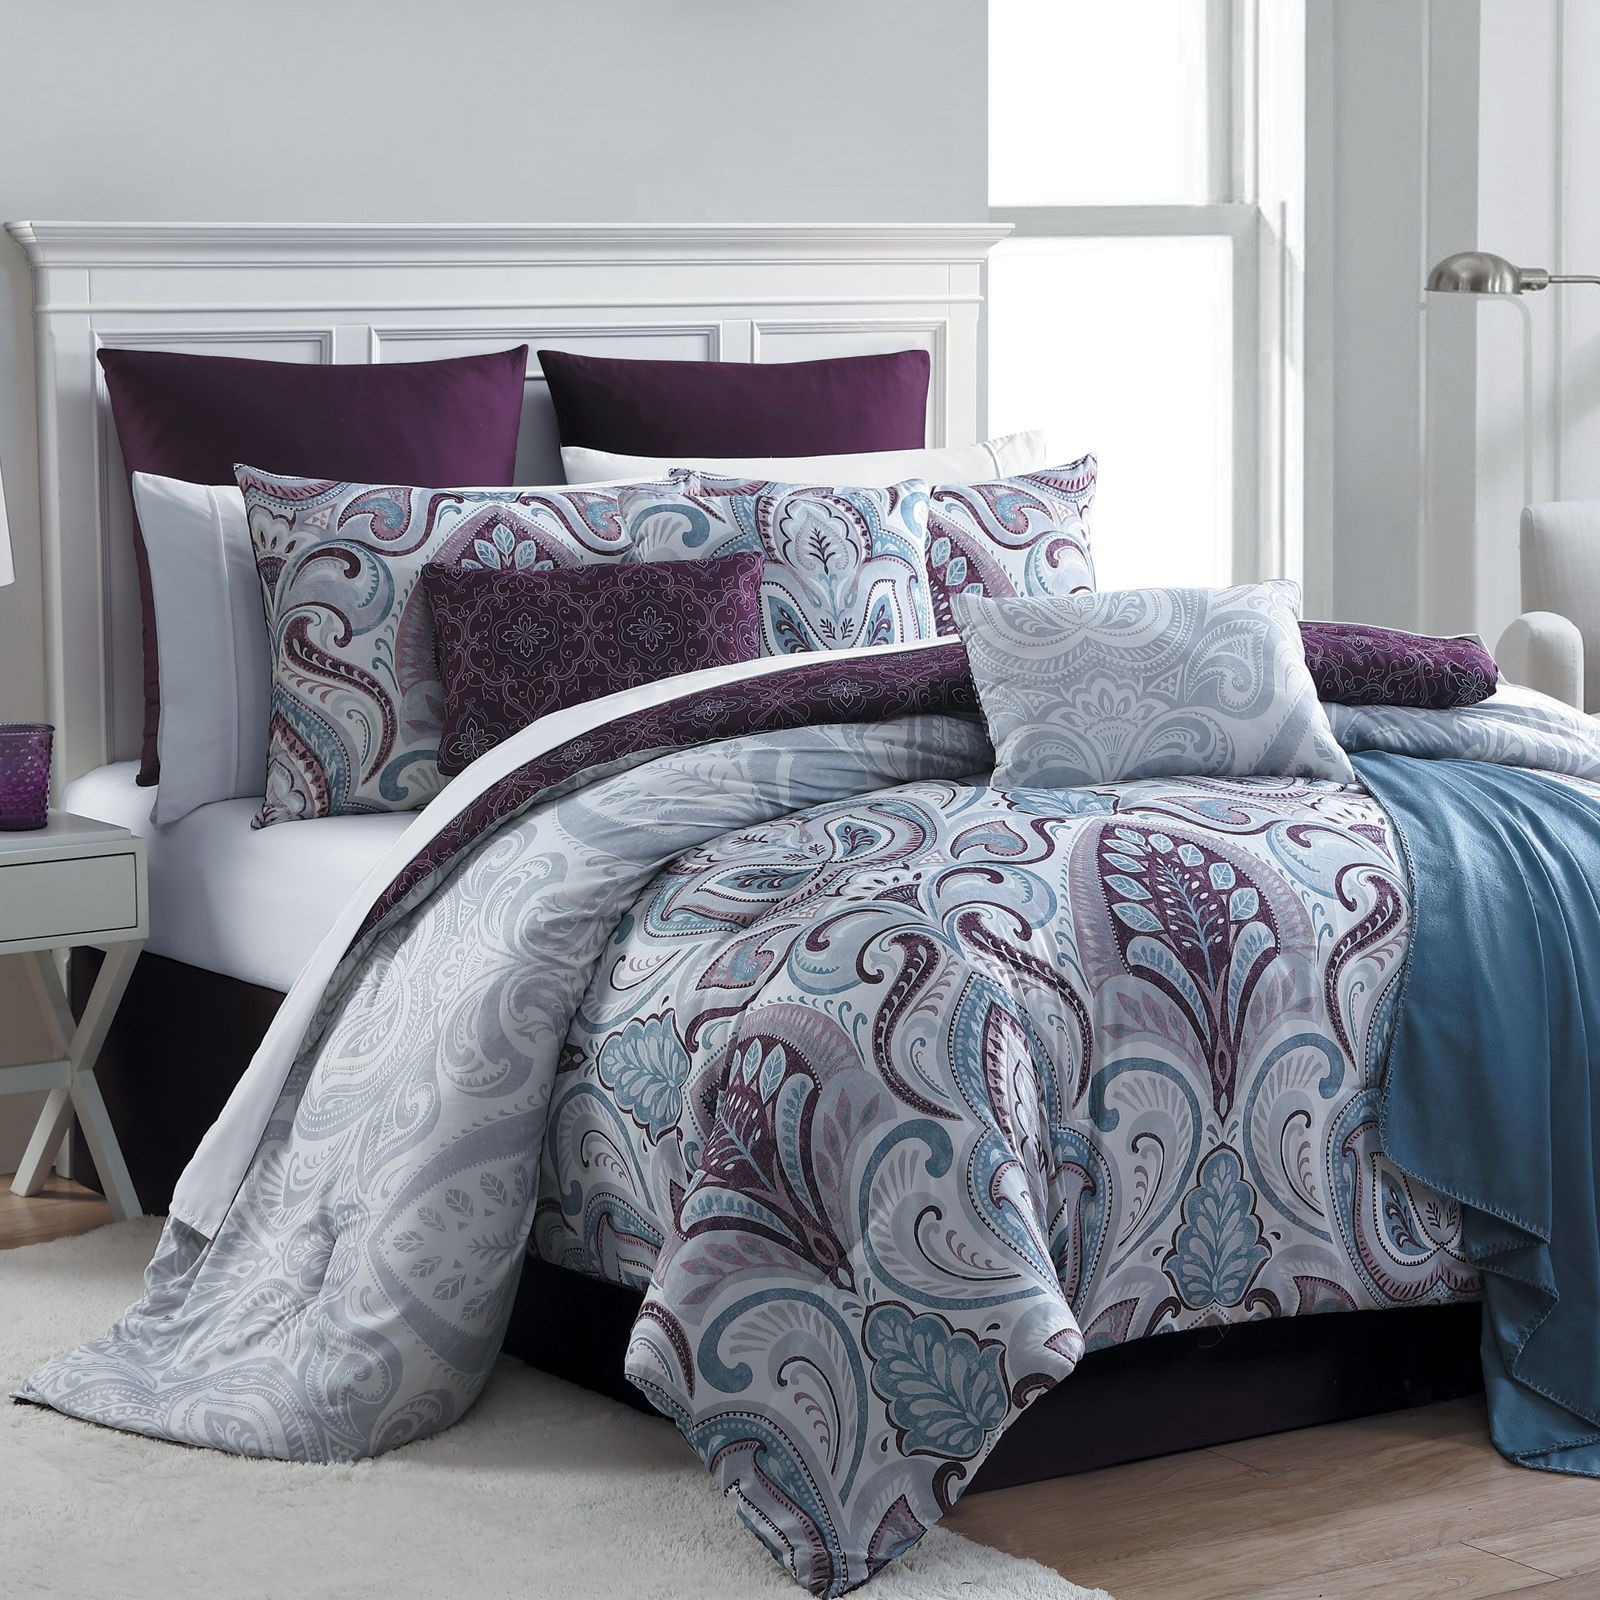 Kmart Deals On Furniture Toys Clothes Tools Tablets Comforter Sets Purple Comforter King Bedding Sets